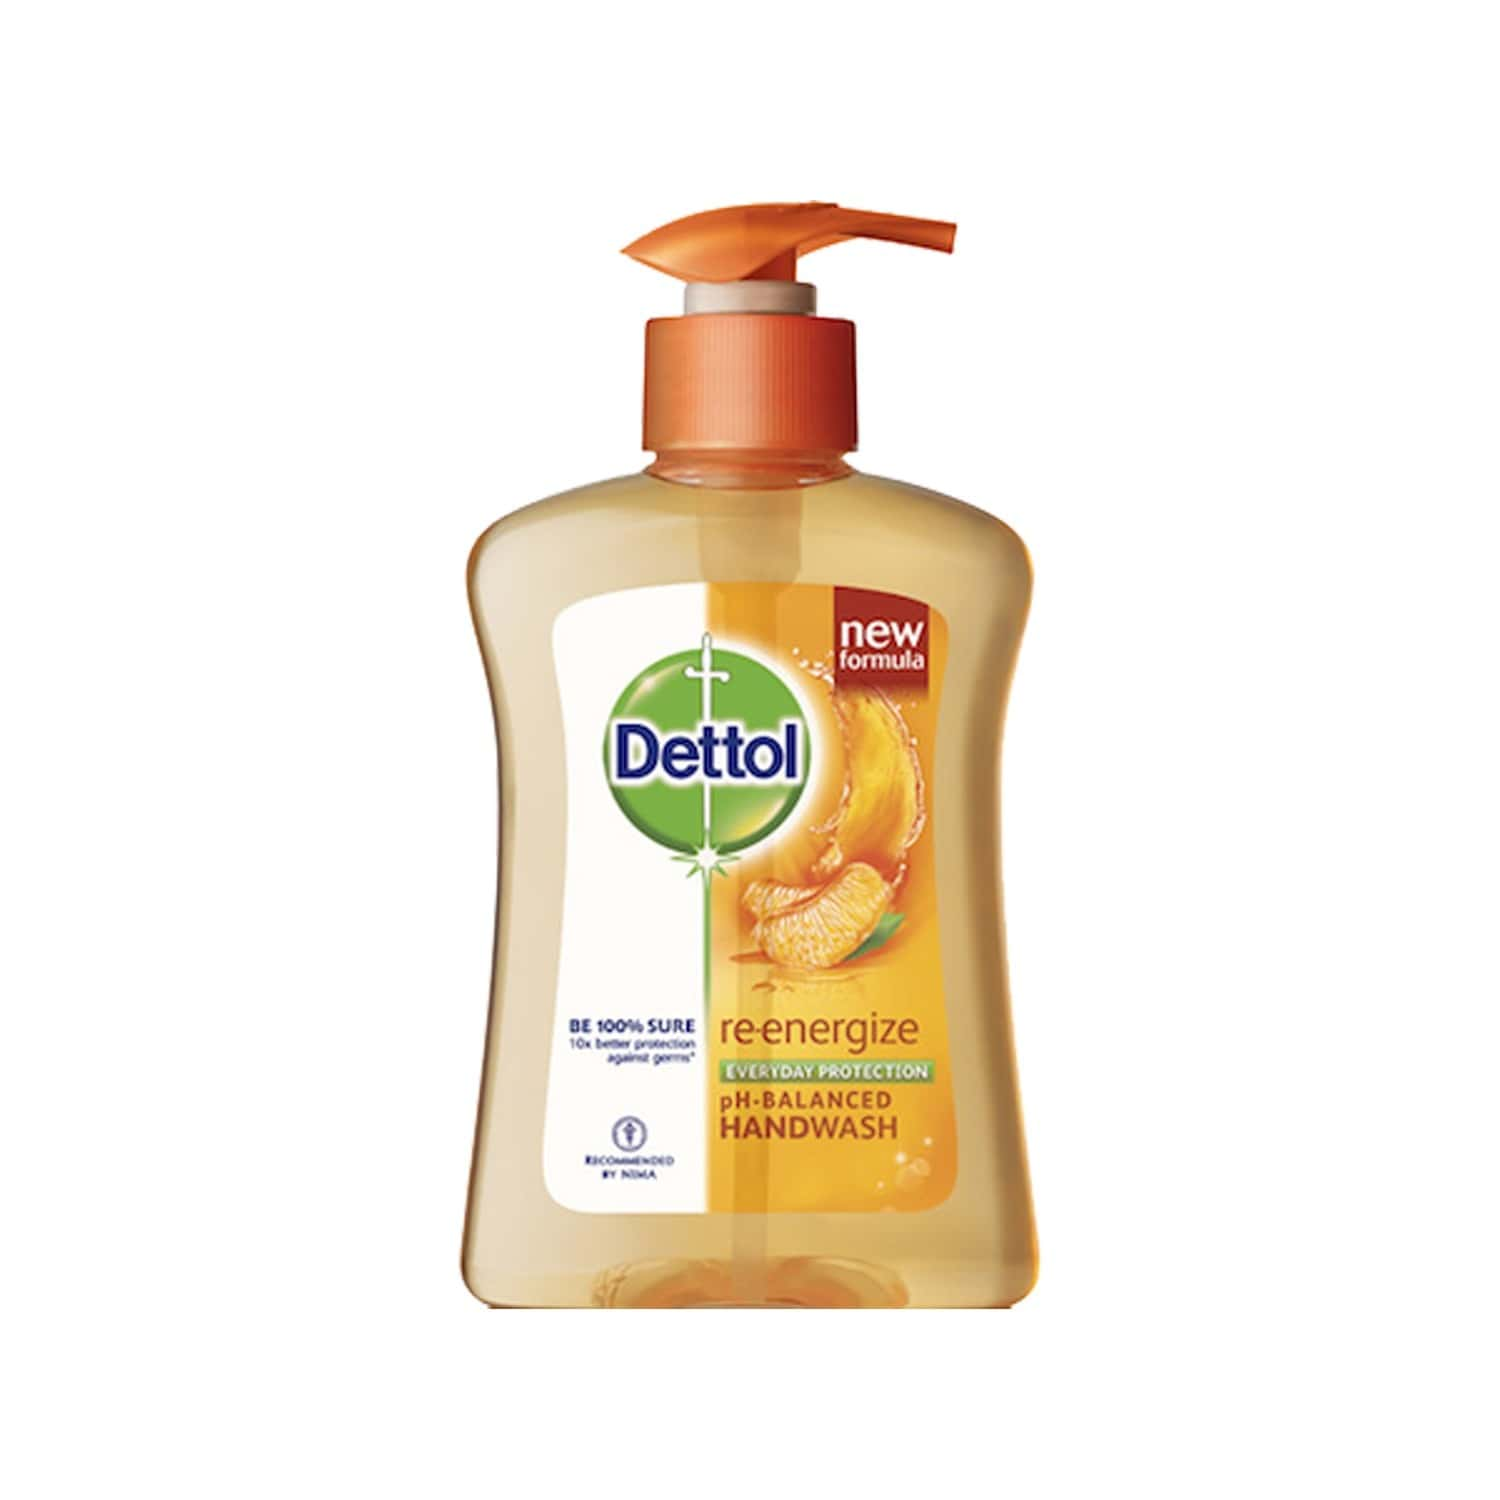 Dettol Germ Protection Liquid Hand Wash Re-energise 200 Ml, Get Free 185 Ml Refill Pack